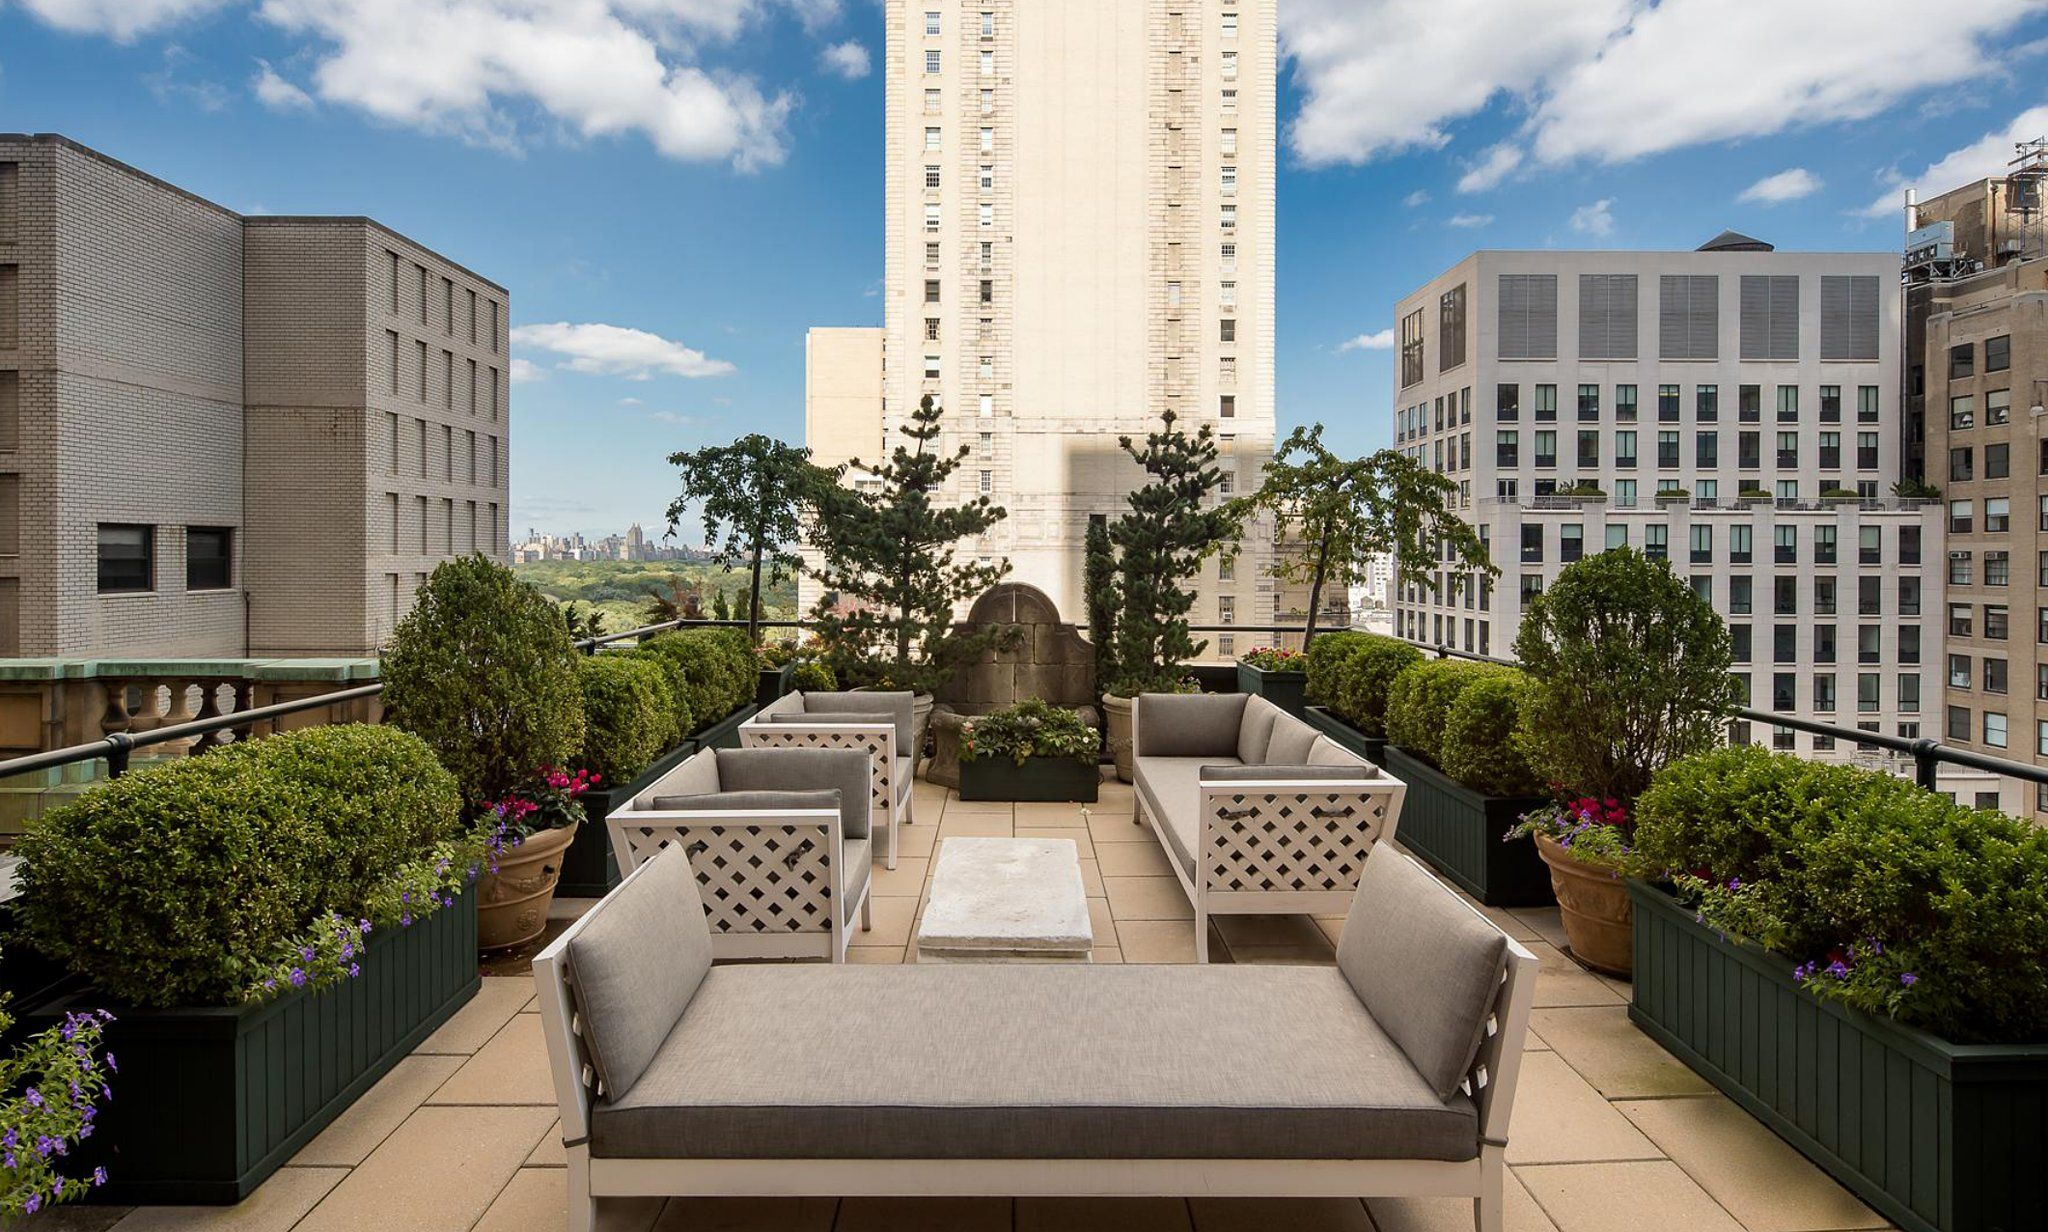 Fifth avenue nyc real estate luxury apartments